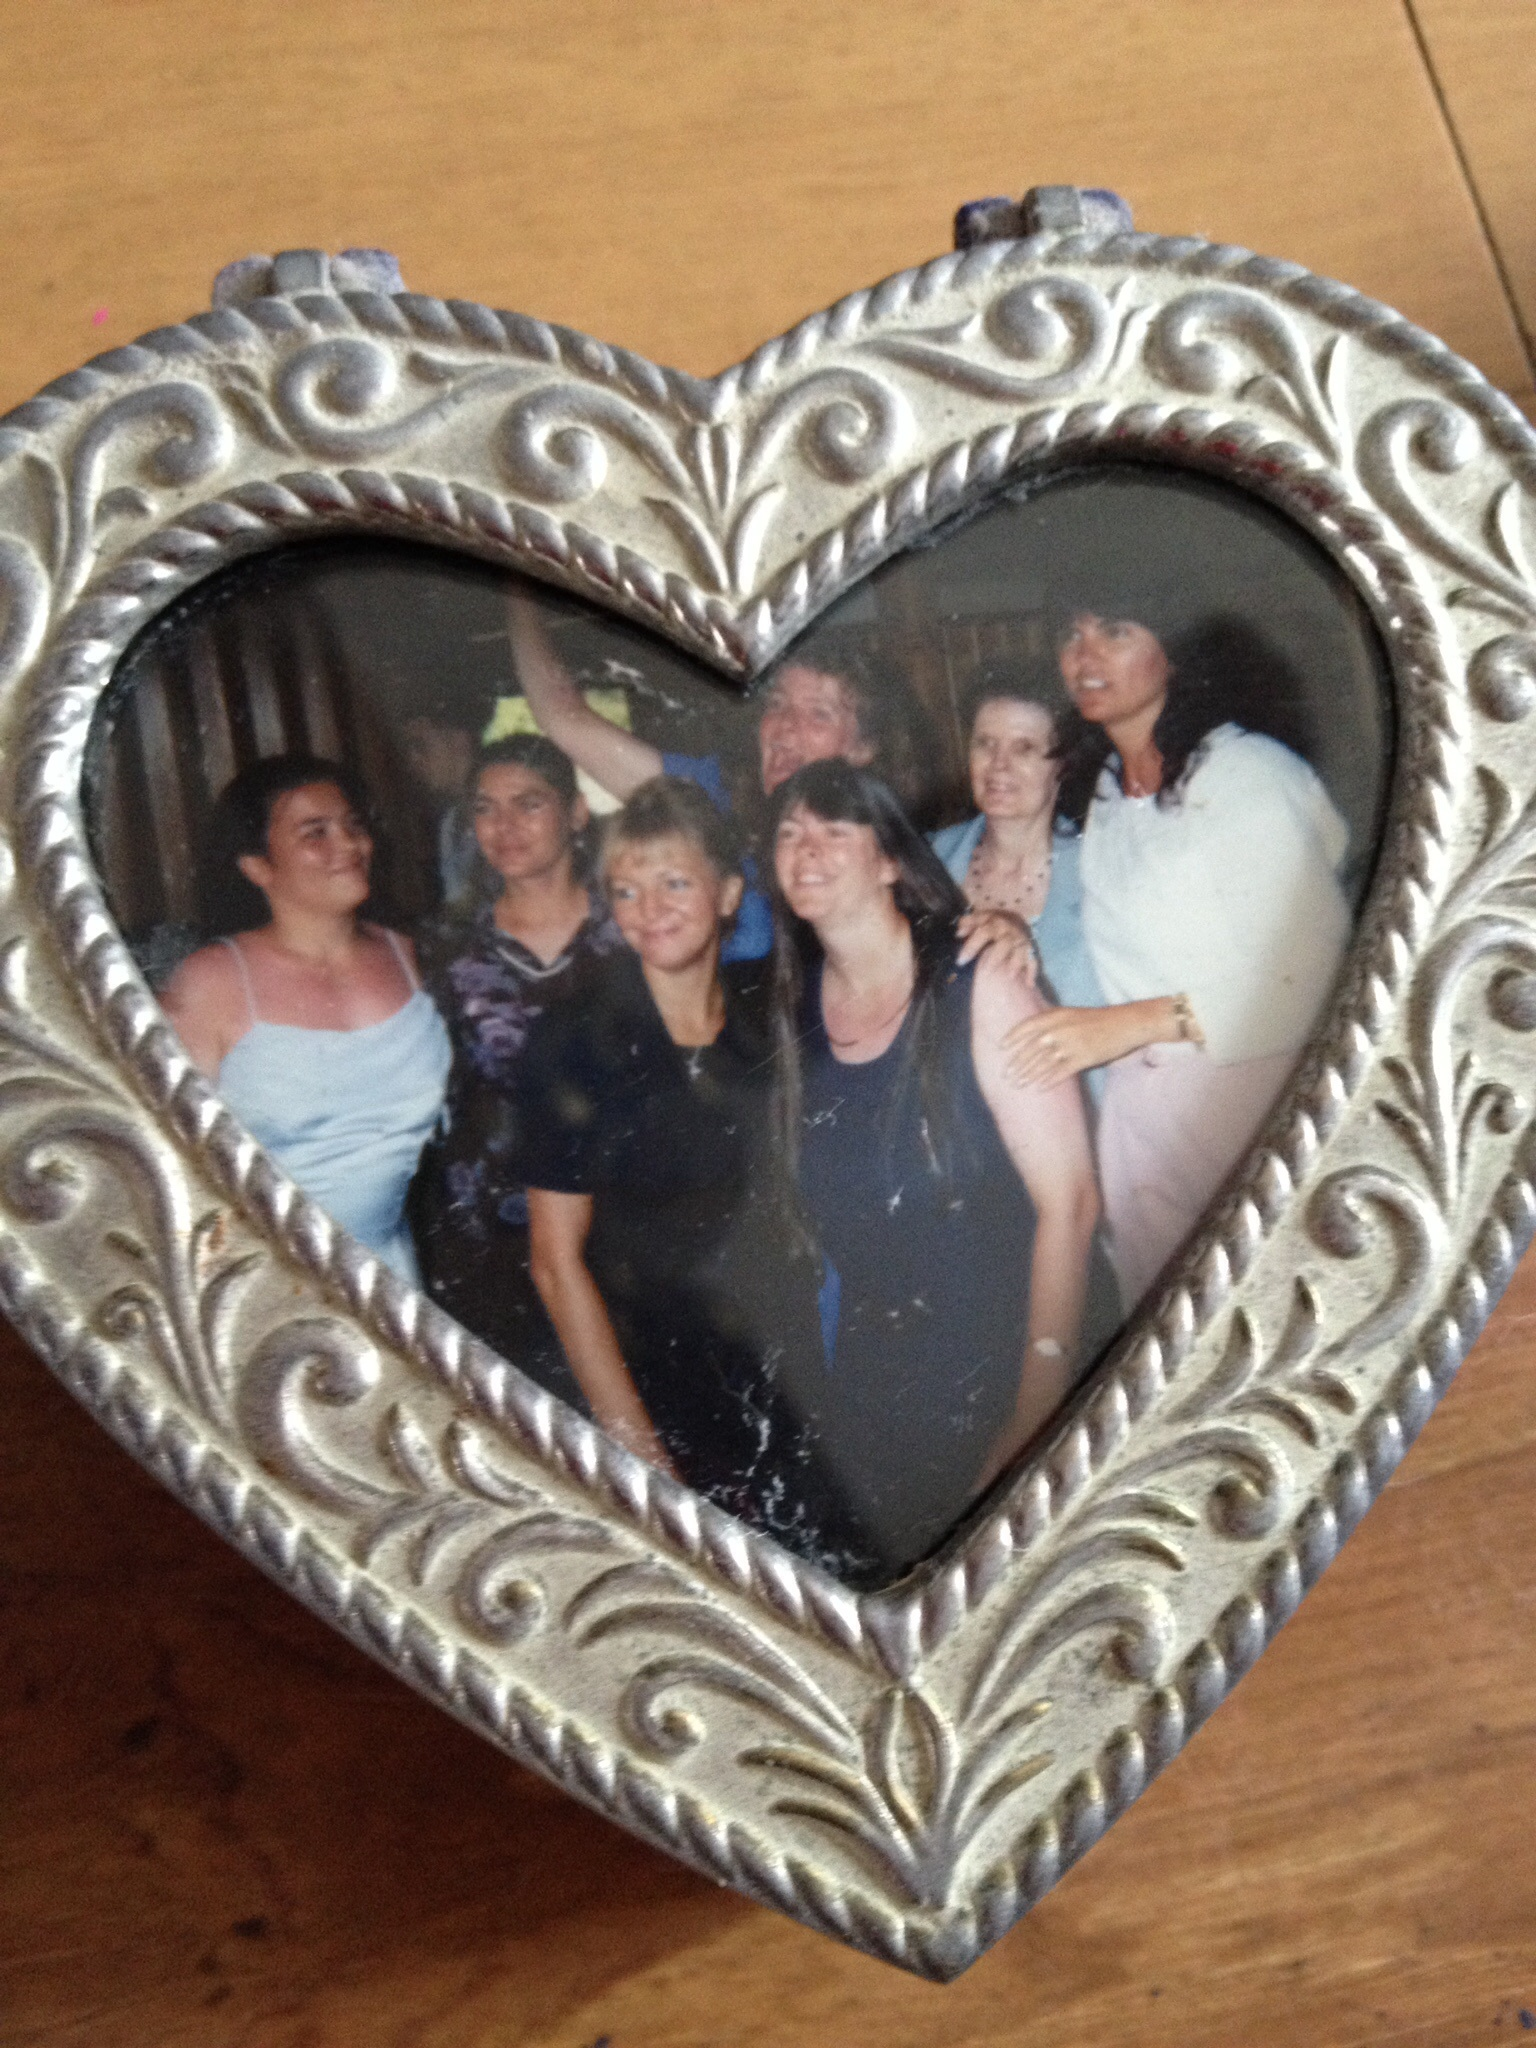 Happier times! Sheila with all her sisters, her mom and niece Kimberly :)